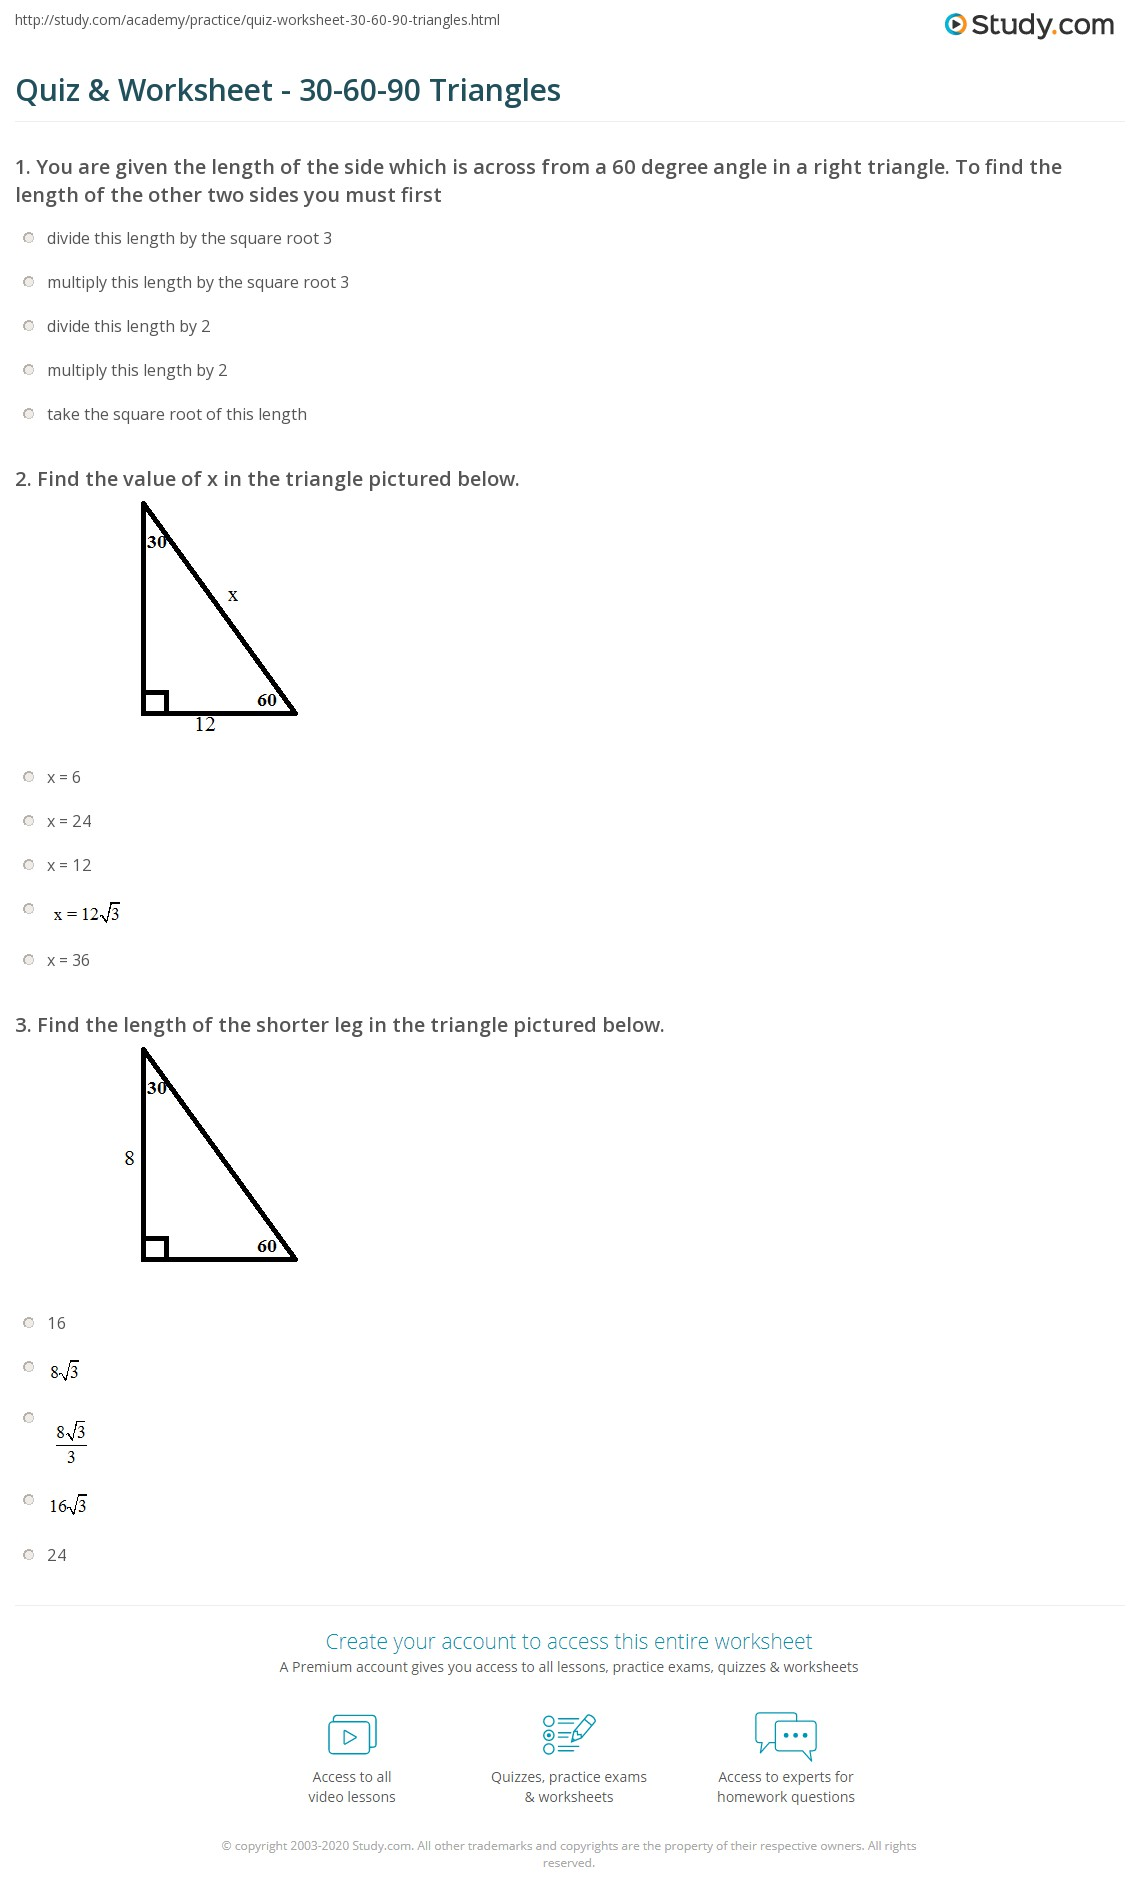 Special Right Triangles 45 45 90 Worksheet – Special Right Triangles 45 45 90 Worksheet